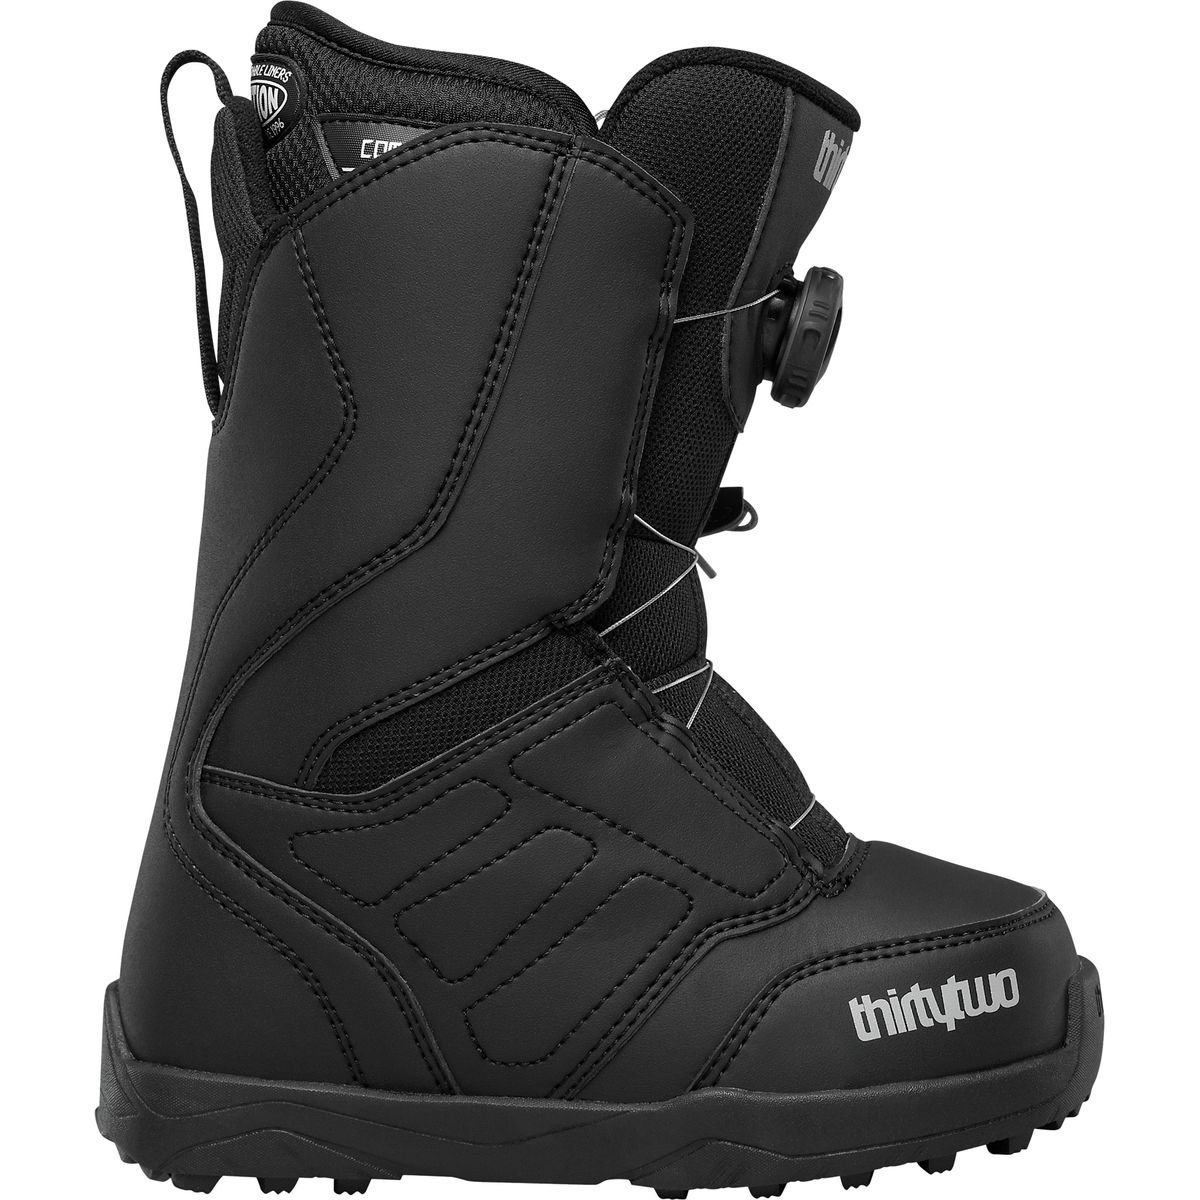 ThirtyTwo Lashed Boa Snowboard Boot - Kids' Black, 2.0 by thirtytwo